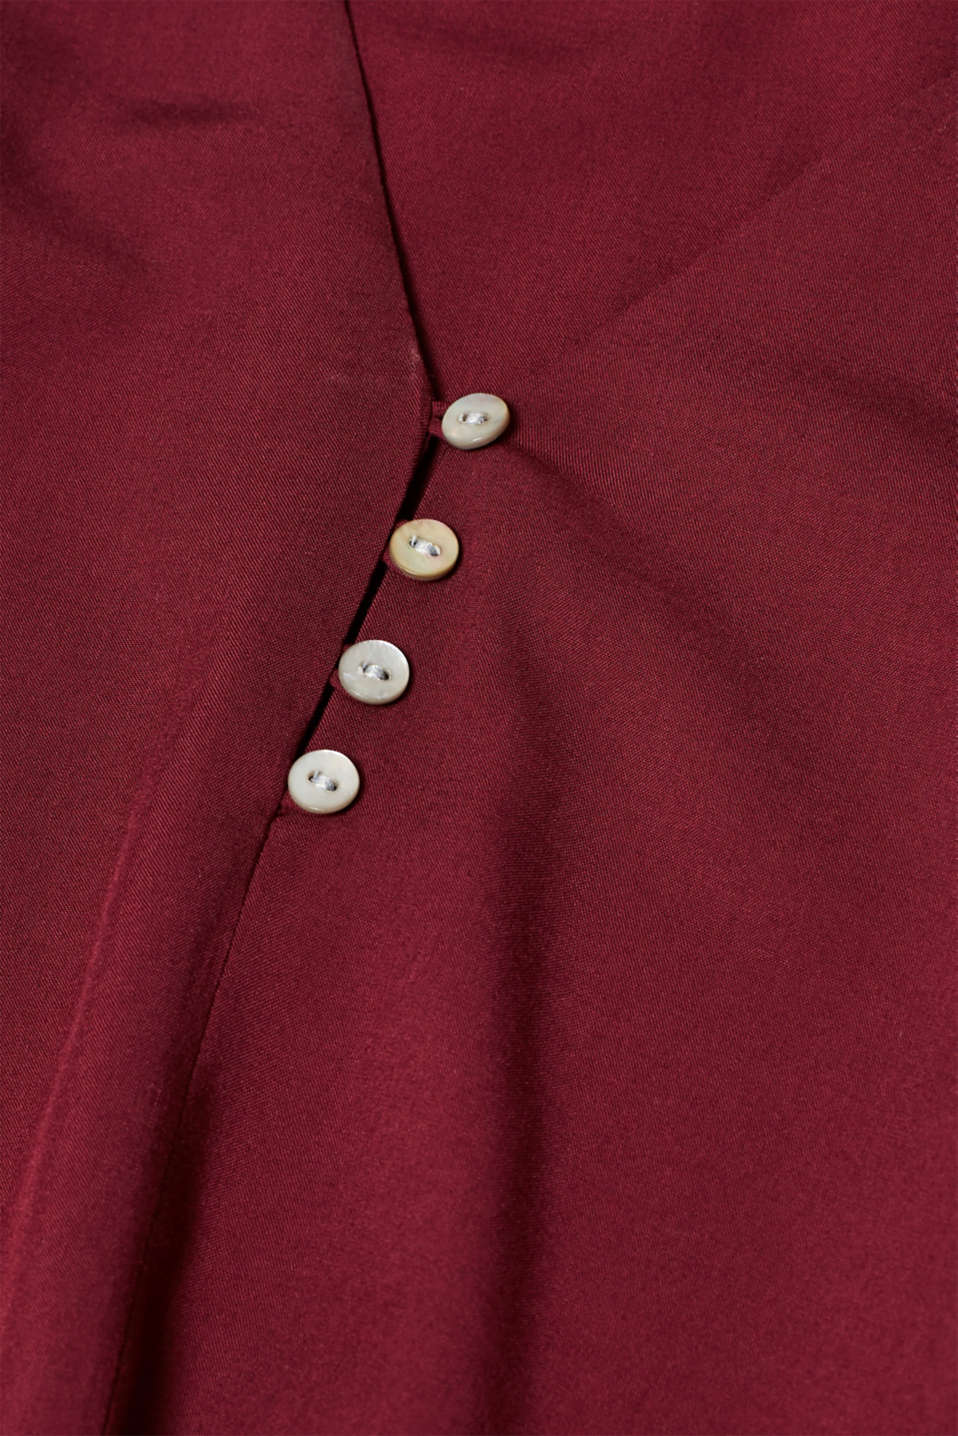 Henley blouse with mother-of-pearl buttons, BORDEAUX RED, detail image number 4